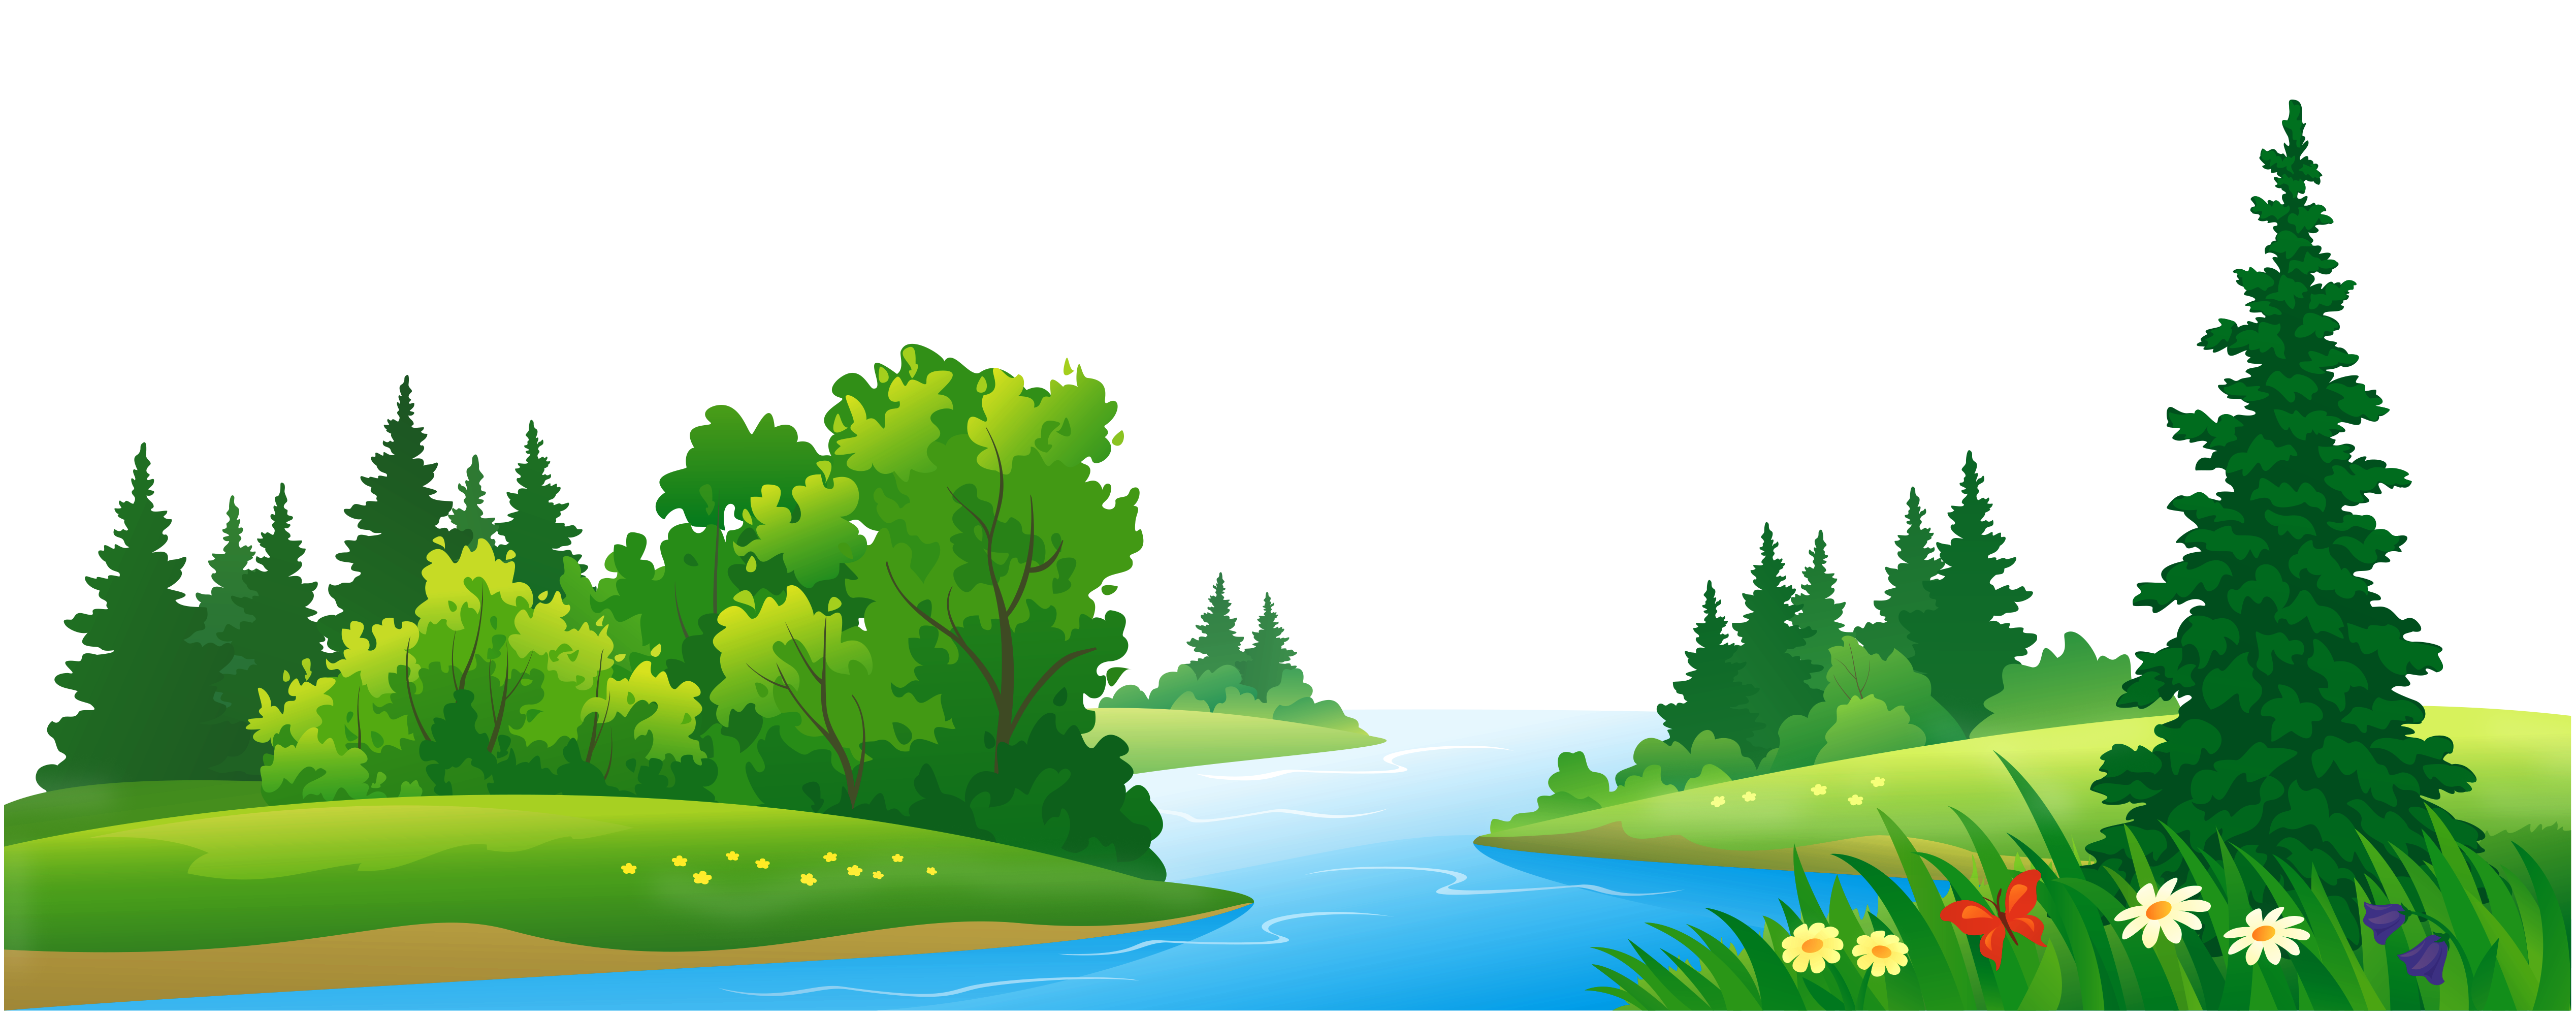 vector royalty free stock vector landscapes forest #108022961